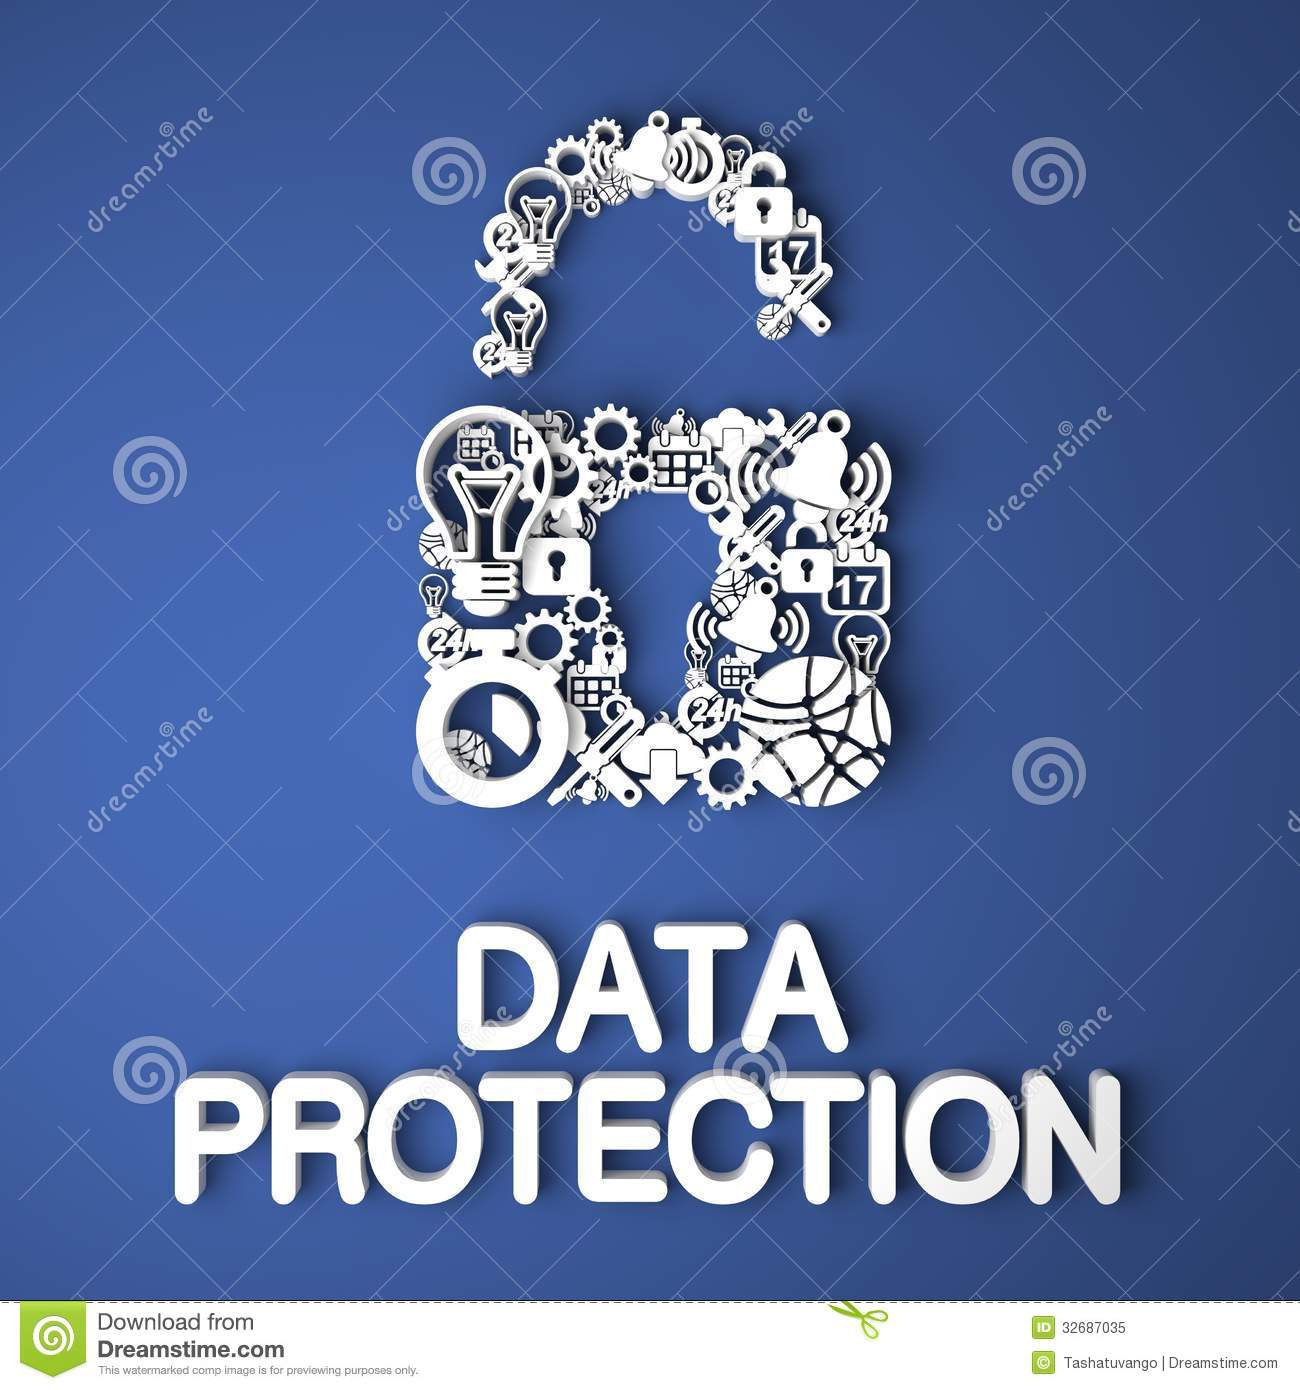 Data Protection Concept. Royalty Free Stock Photo - Image: 32687035